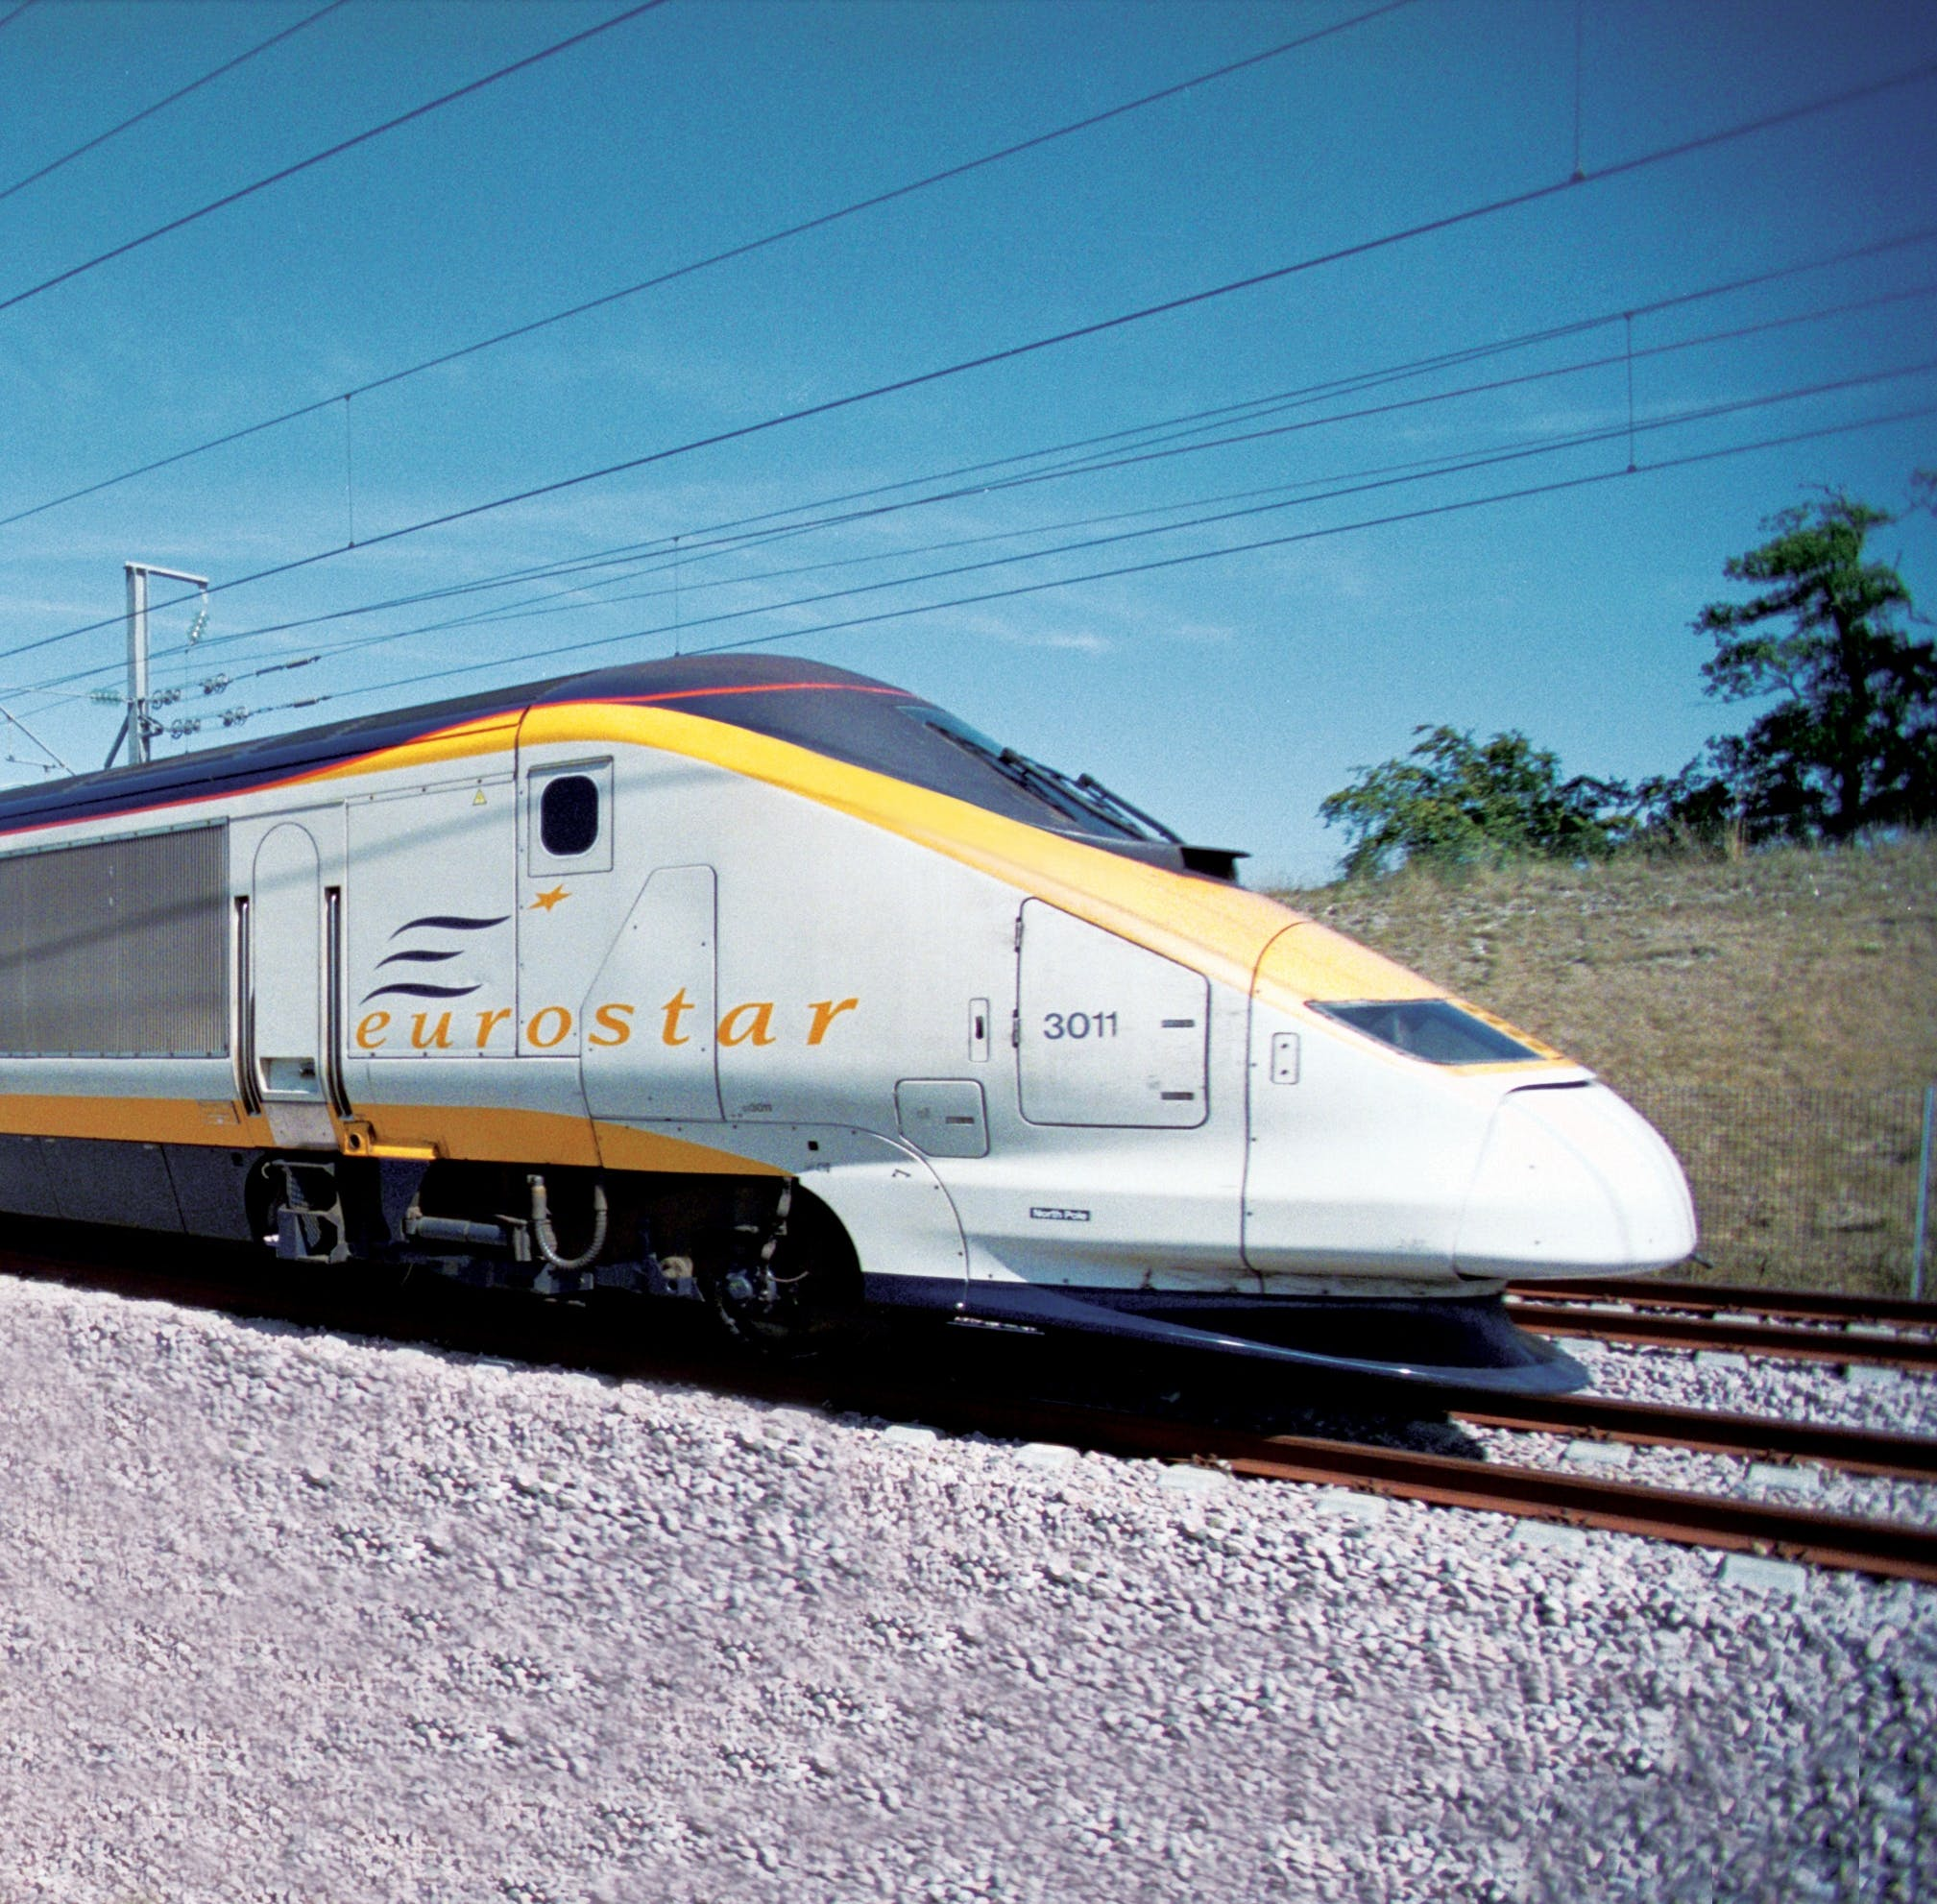 Nose cone of Eurostar on the move